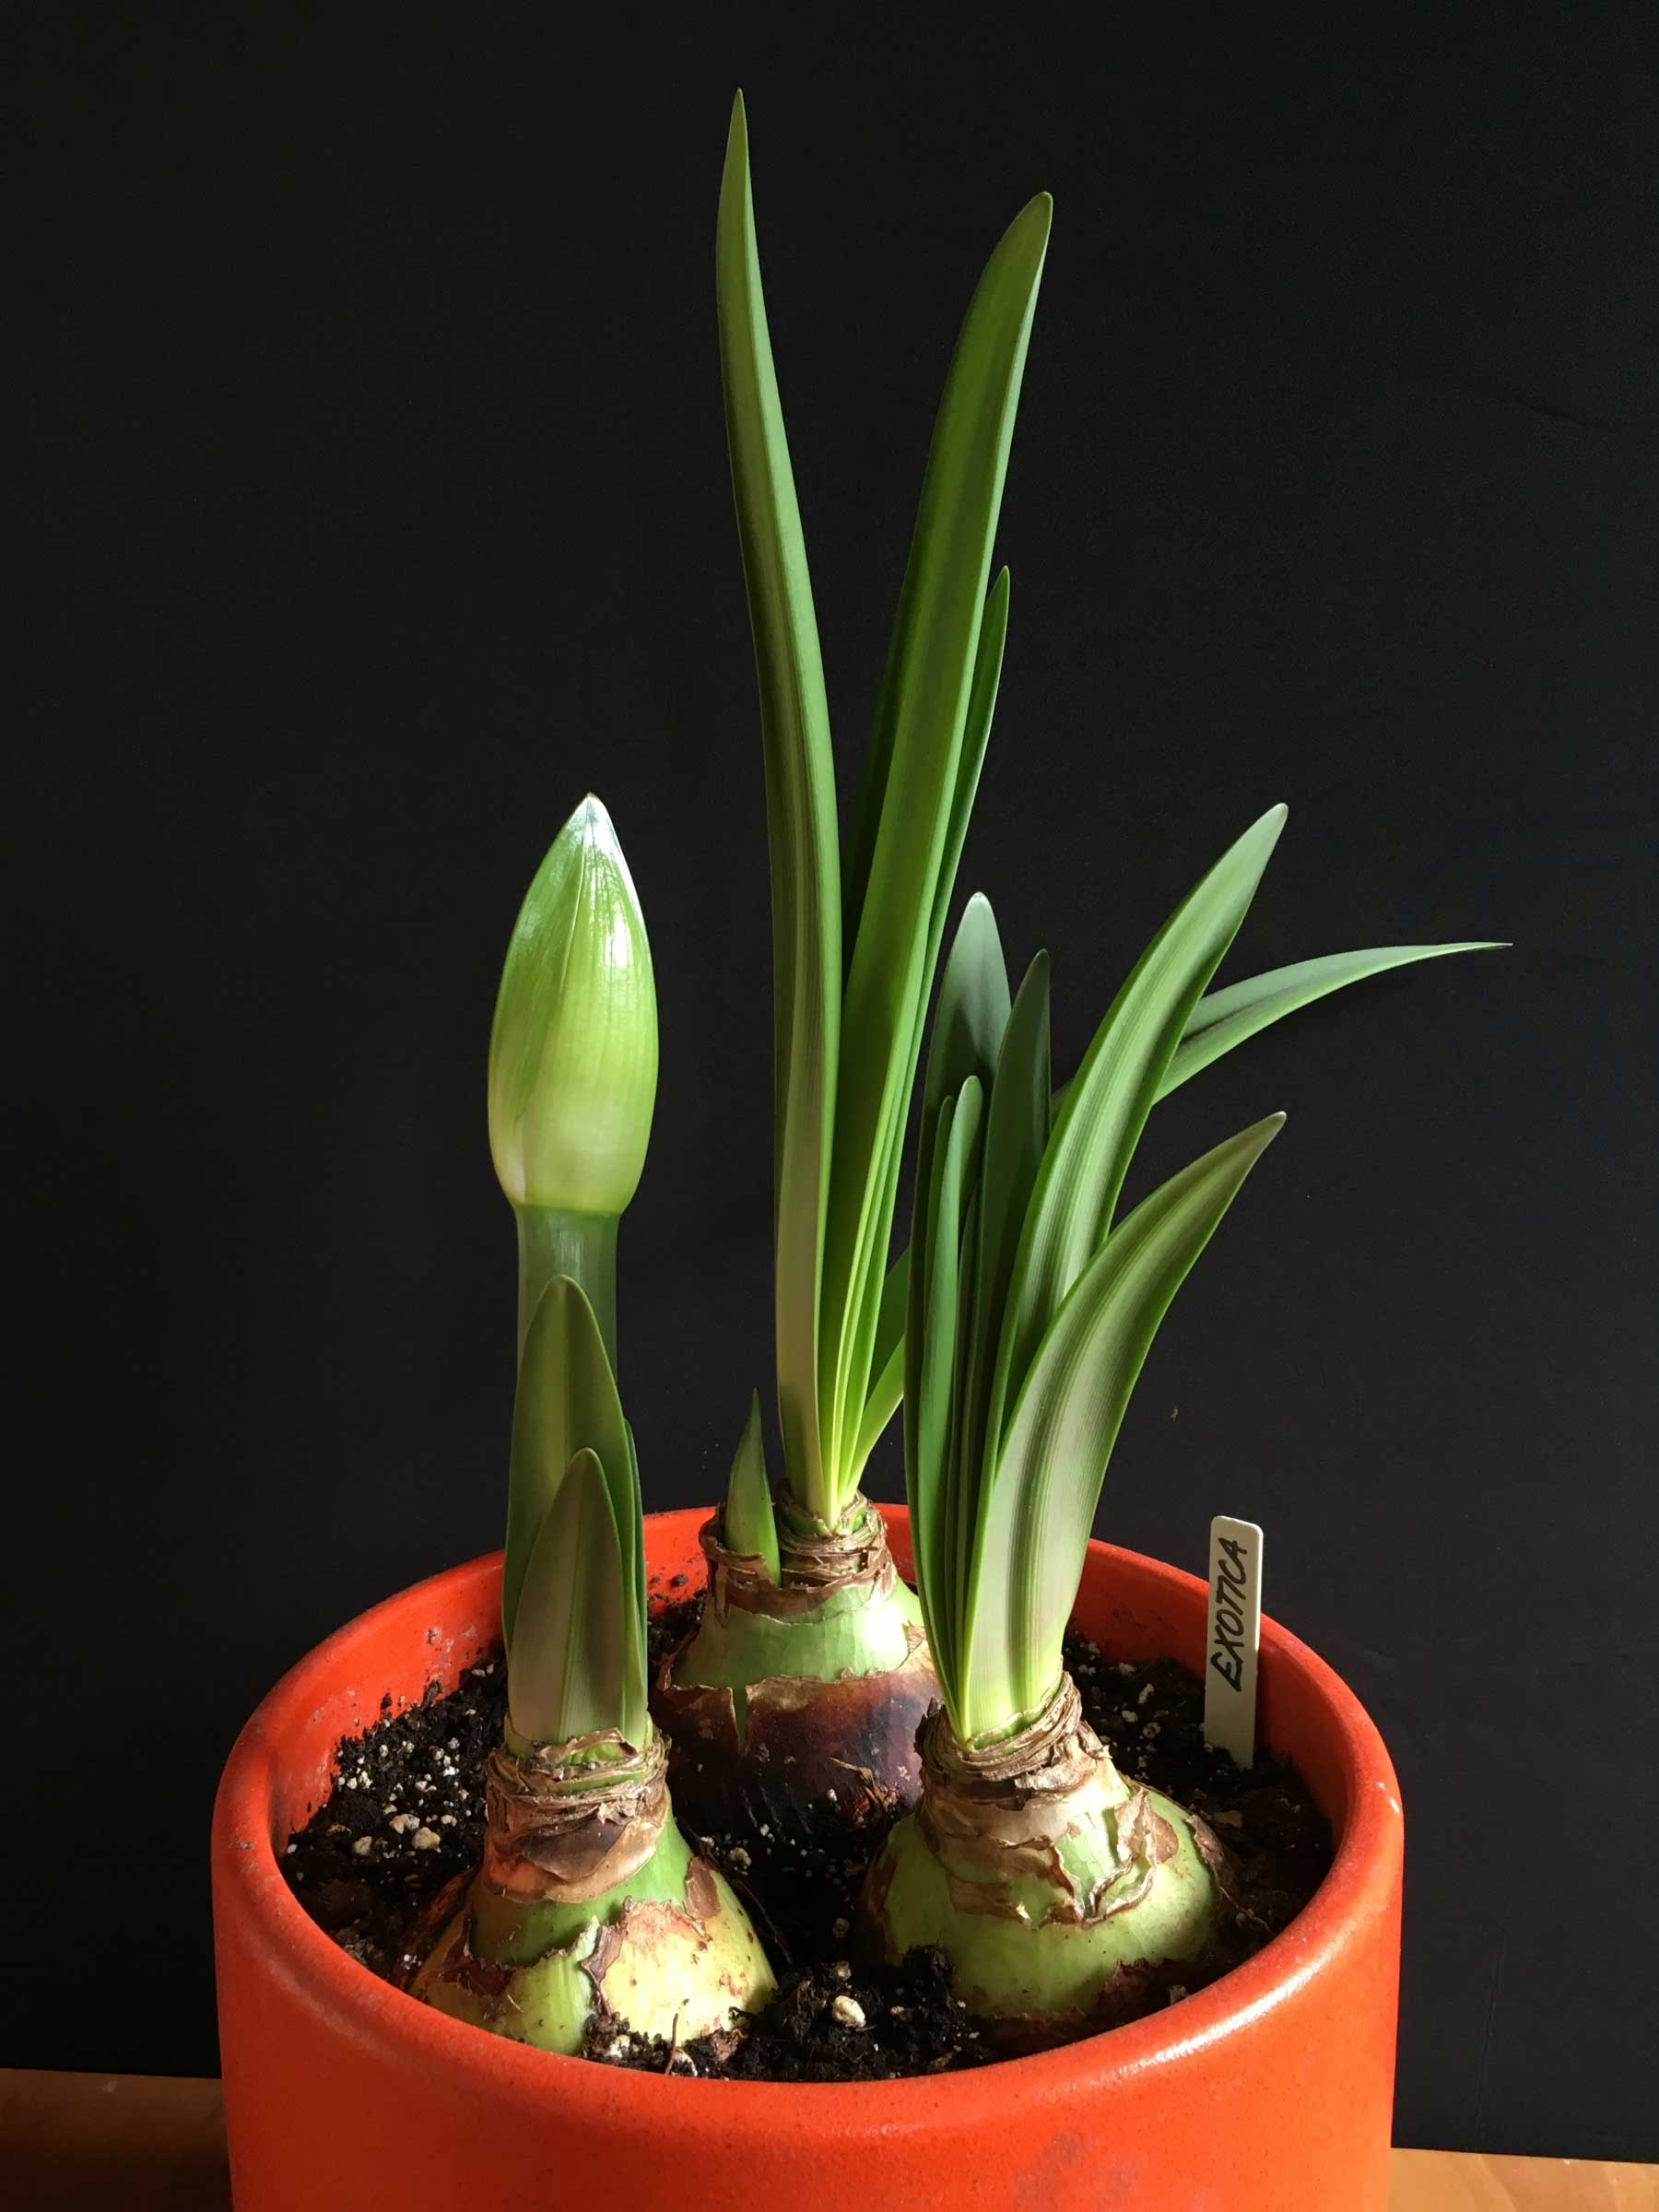 How to Know When Amaryllis Bulbs Will Flower - Longfield Gardens